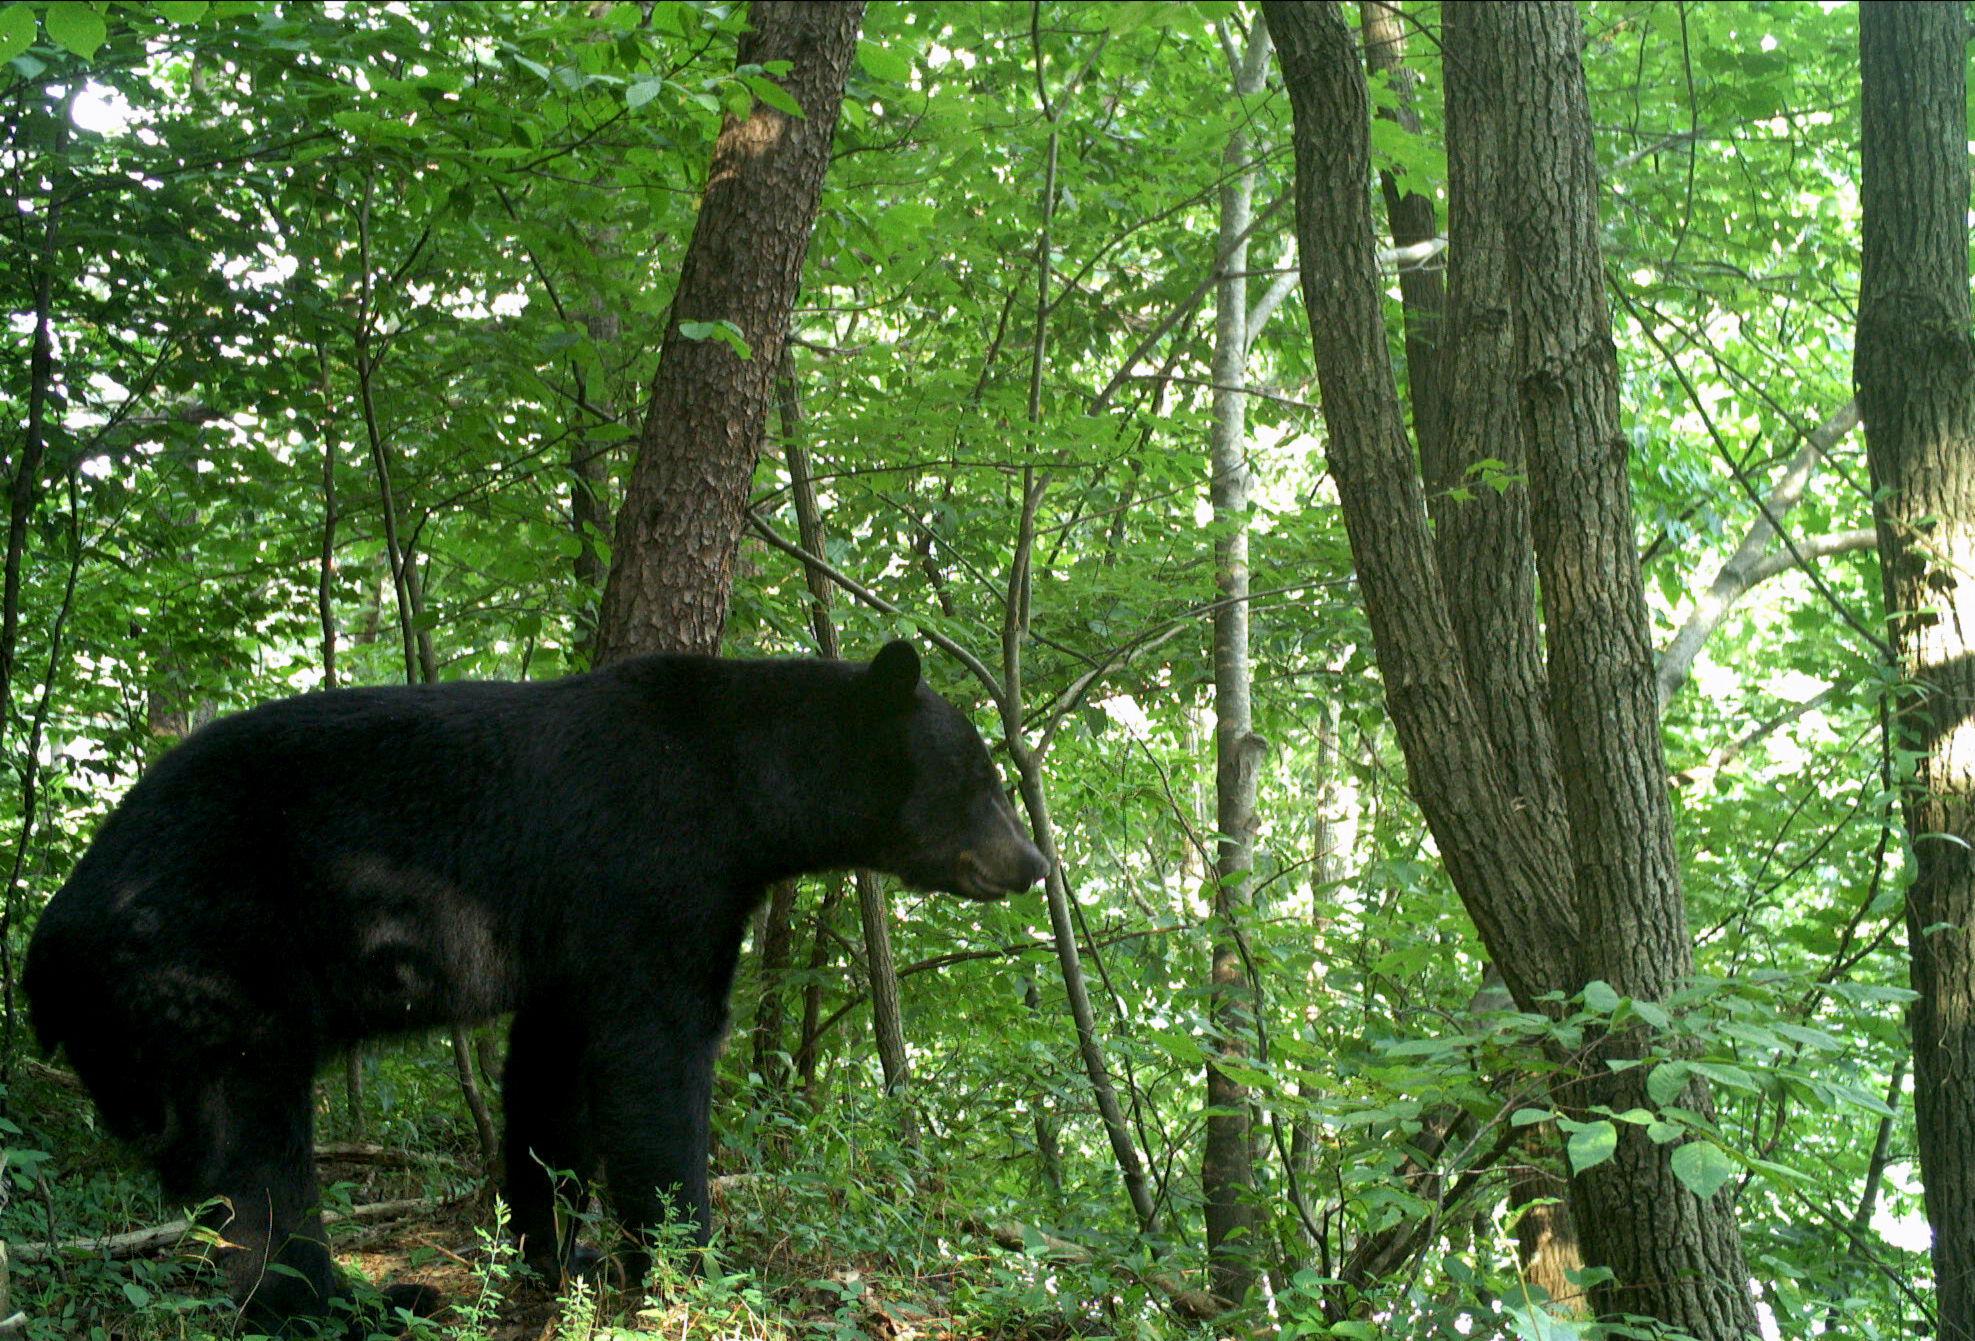 This bear is looking down at Interstate 40 and trying to assess crossing options. Studies have shown that animals experience an increased heart rate and respiratory rate while trying to figure out how to cross a busy roadway. Photo courtesy of National Parks Conservation Association and Wildlands Network.